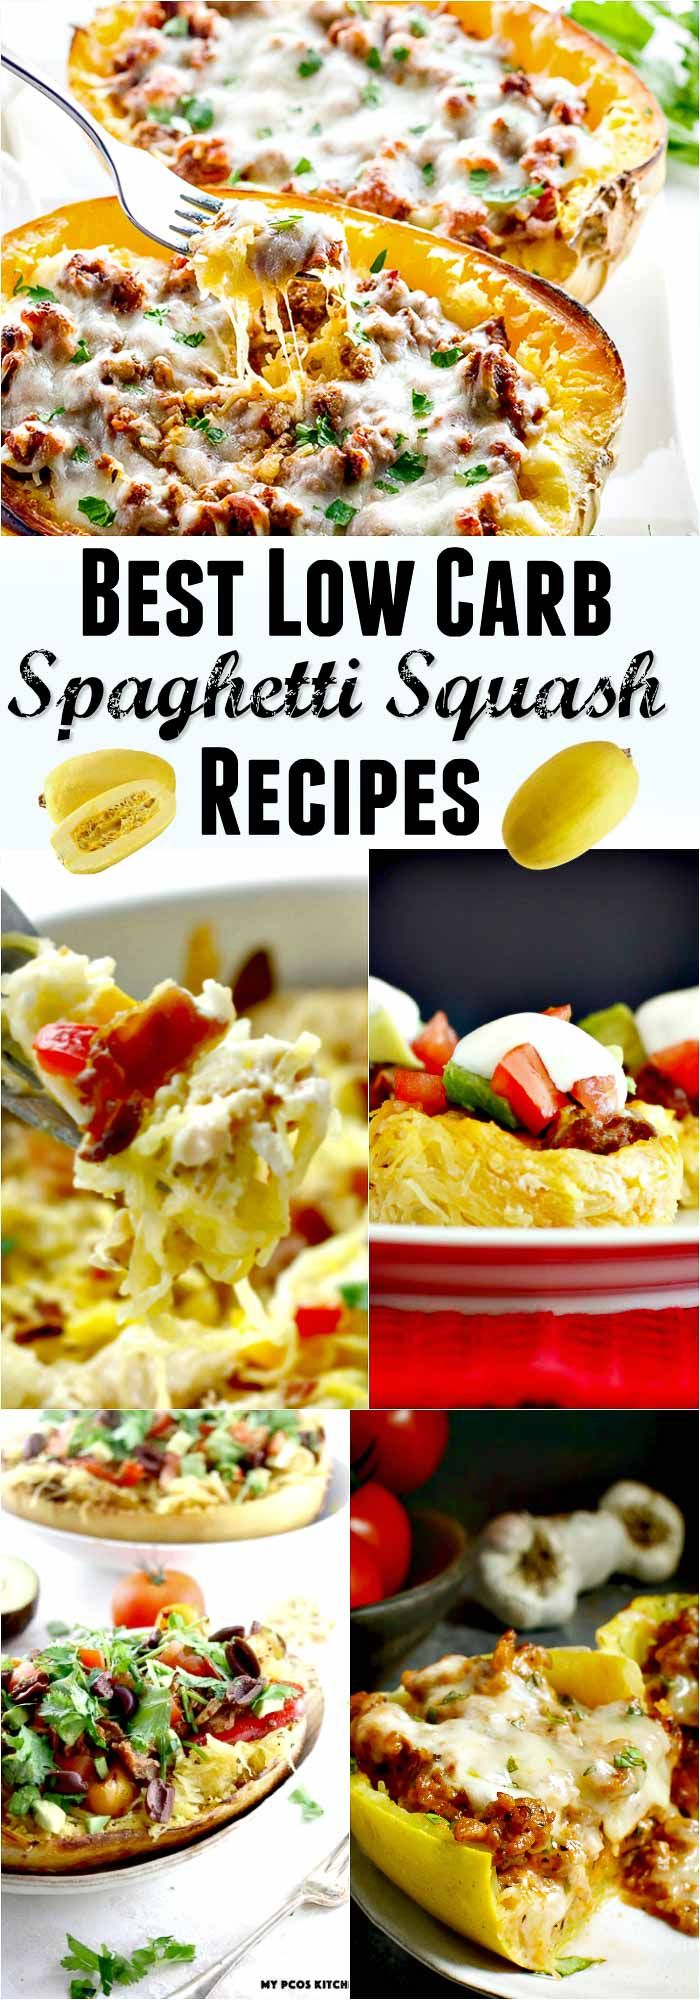 Best Low Carb Spaghetti Squash Recipe Collection